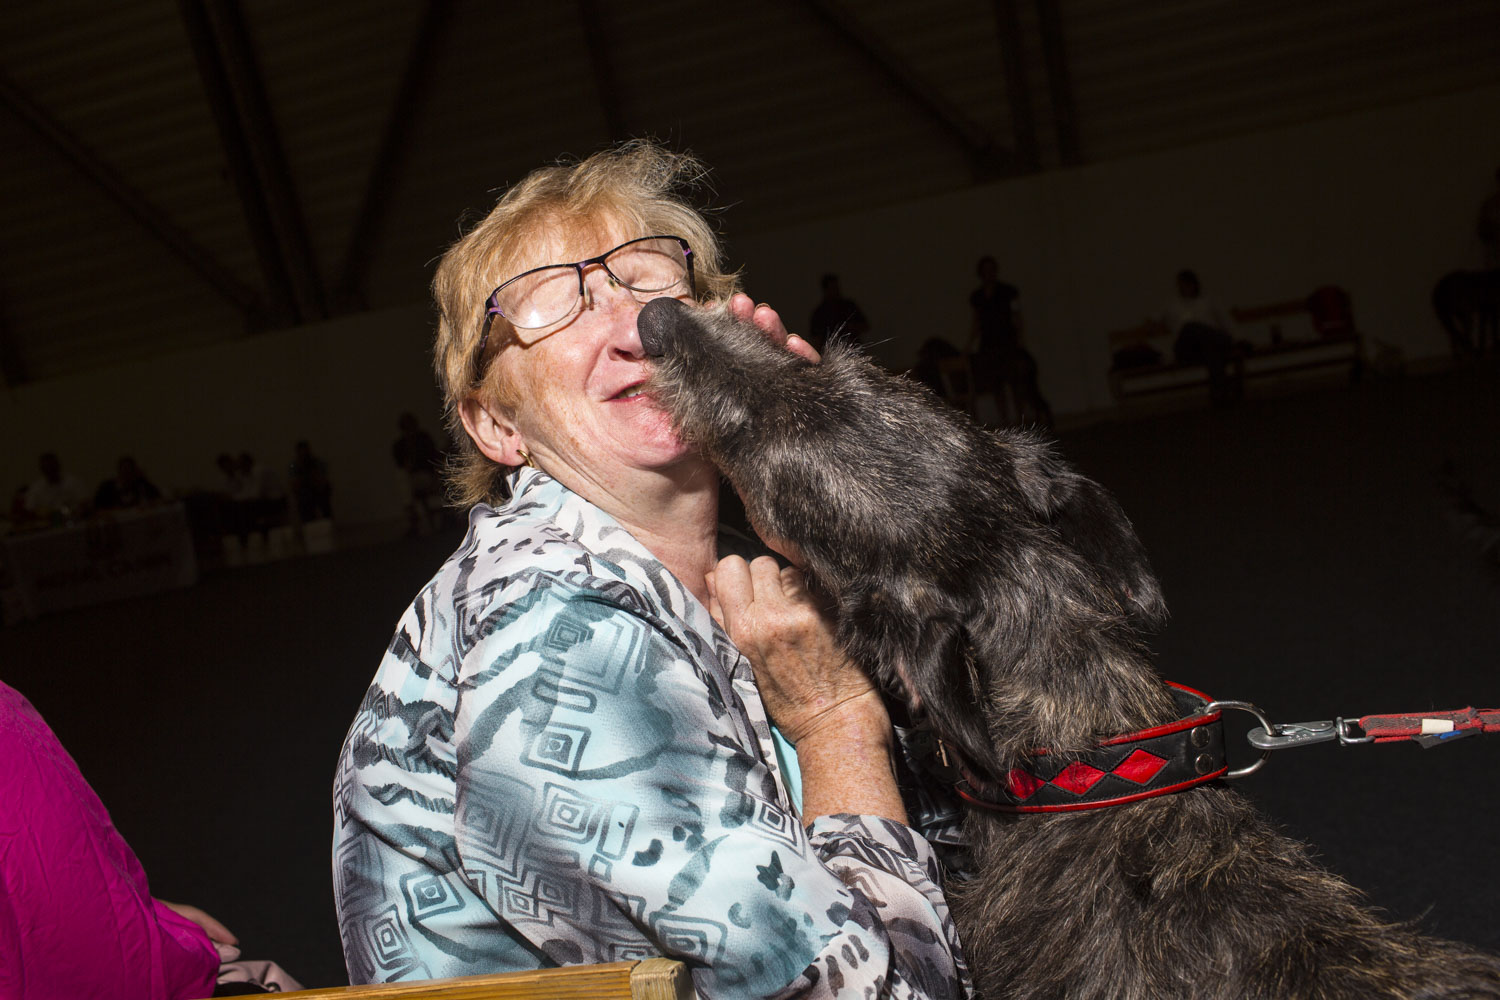 Tove Johnsen, a former breeder of Scottish Deerhounds, meets Minka, a one year old female Scottish Deerhound from Finland at the 2014 World Dog Show on Saturday, August 9th, 2014, in Helsinki, Finland.